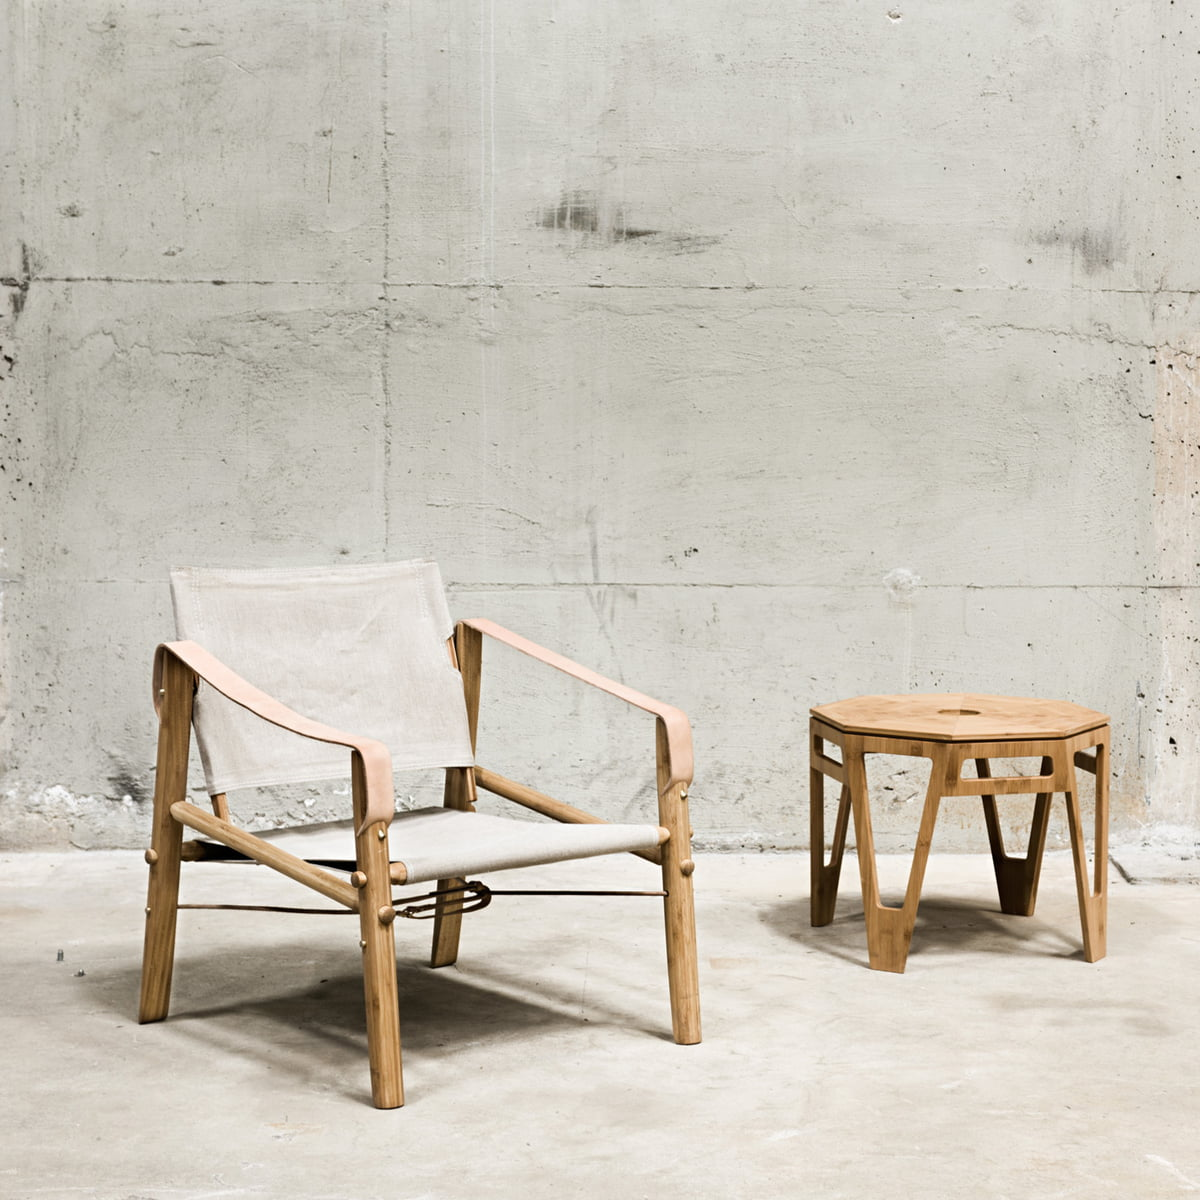 Nomad Chair by We Do Wood in the home design shop